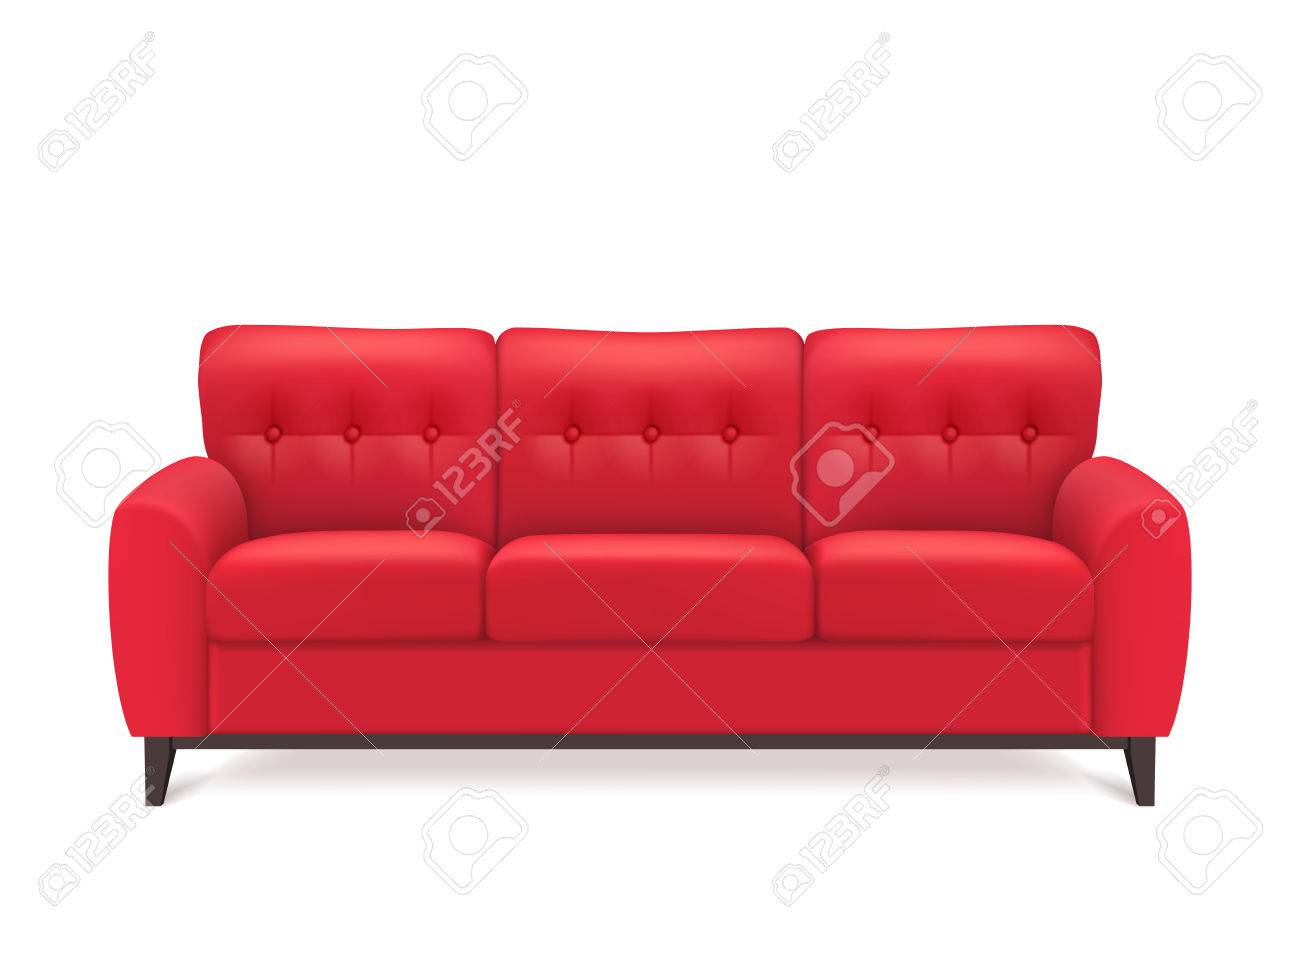 Red leather luxury sofa for modern living room reception or lounge  single object realistic design vector illustration Stock Vector - 52695504